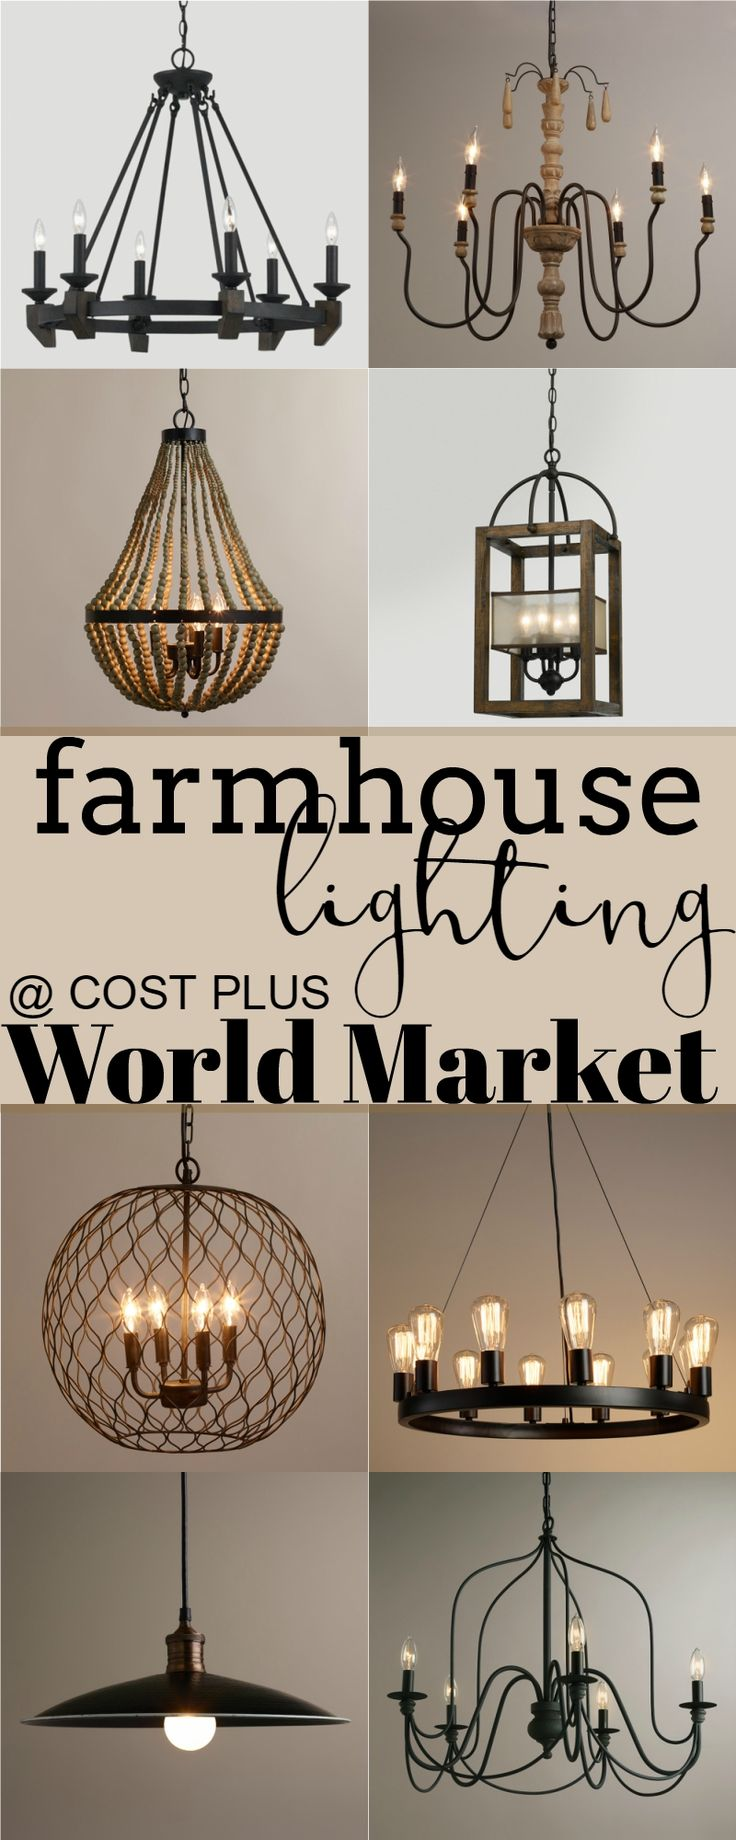 Get Farmhouse Lighting at Cost Plus World Market #blog #mommyandmunchkin #farmhouse #fixer #upper #style #rustic #lighting #joanna #gaines #inspiration